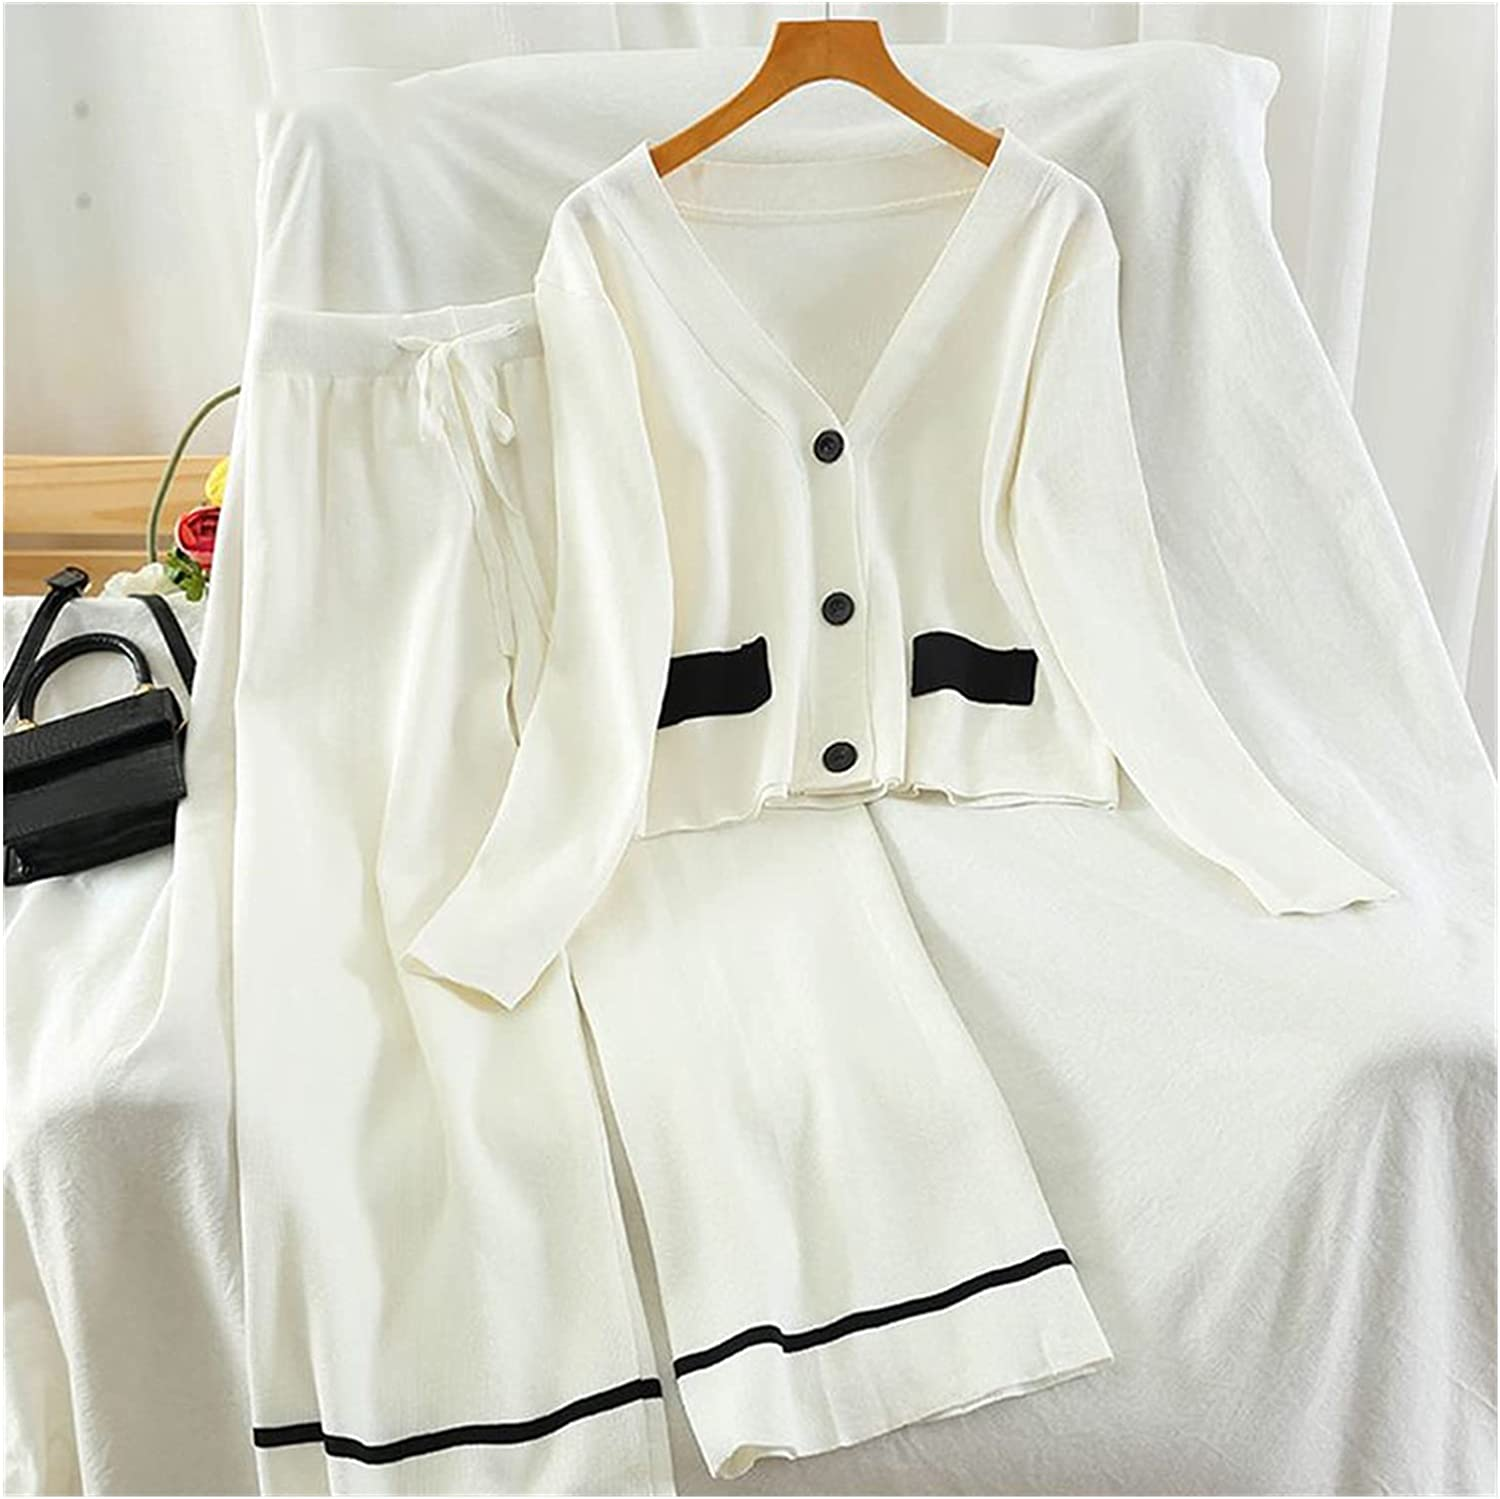 SGZYJ Spring Summer Women Knitted Tracksuits 2 Piece Sets Single Breasted Cardigan Sweate + Straight Wide Leg Pant Suits (Color : White, Size : One Size)